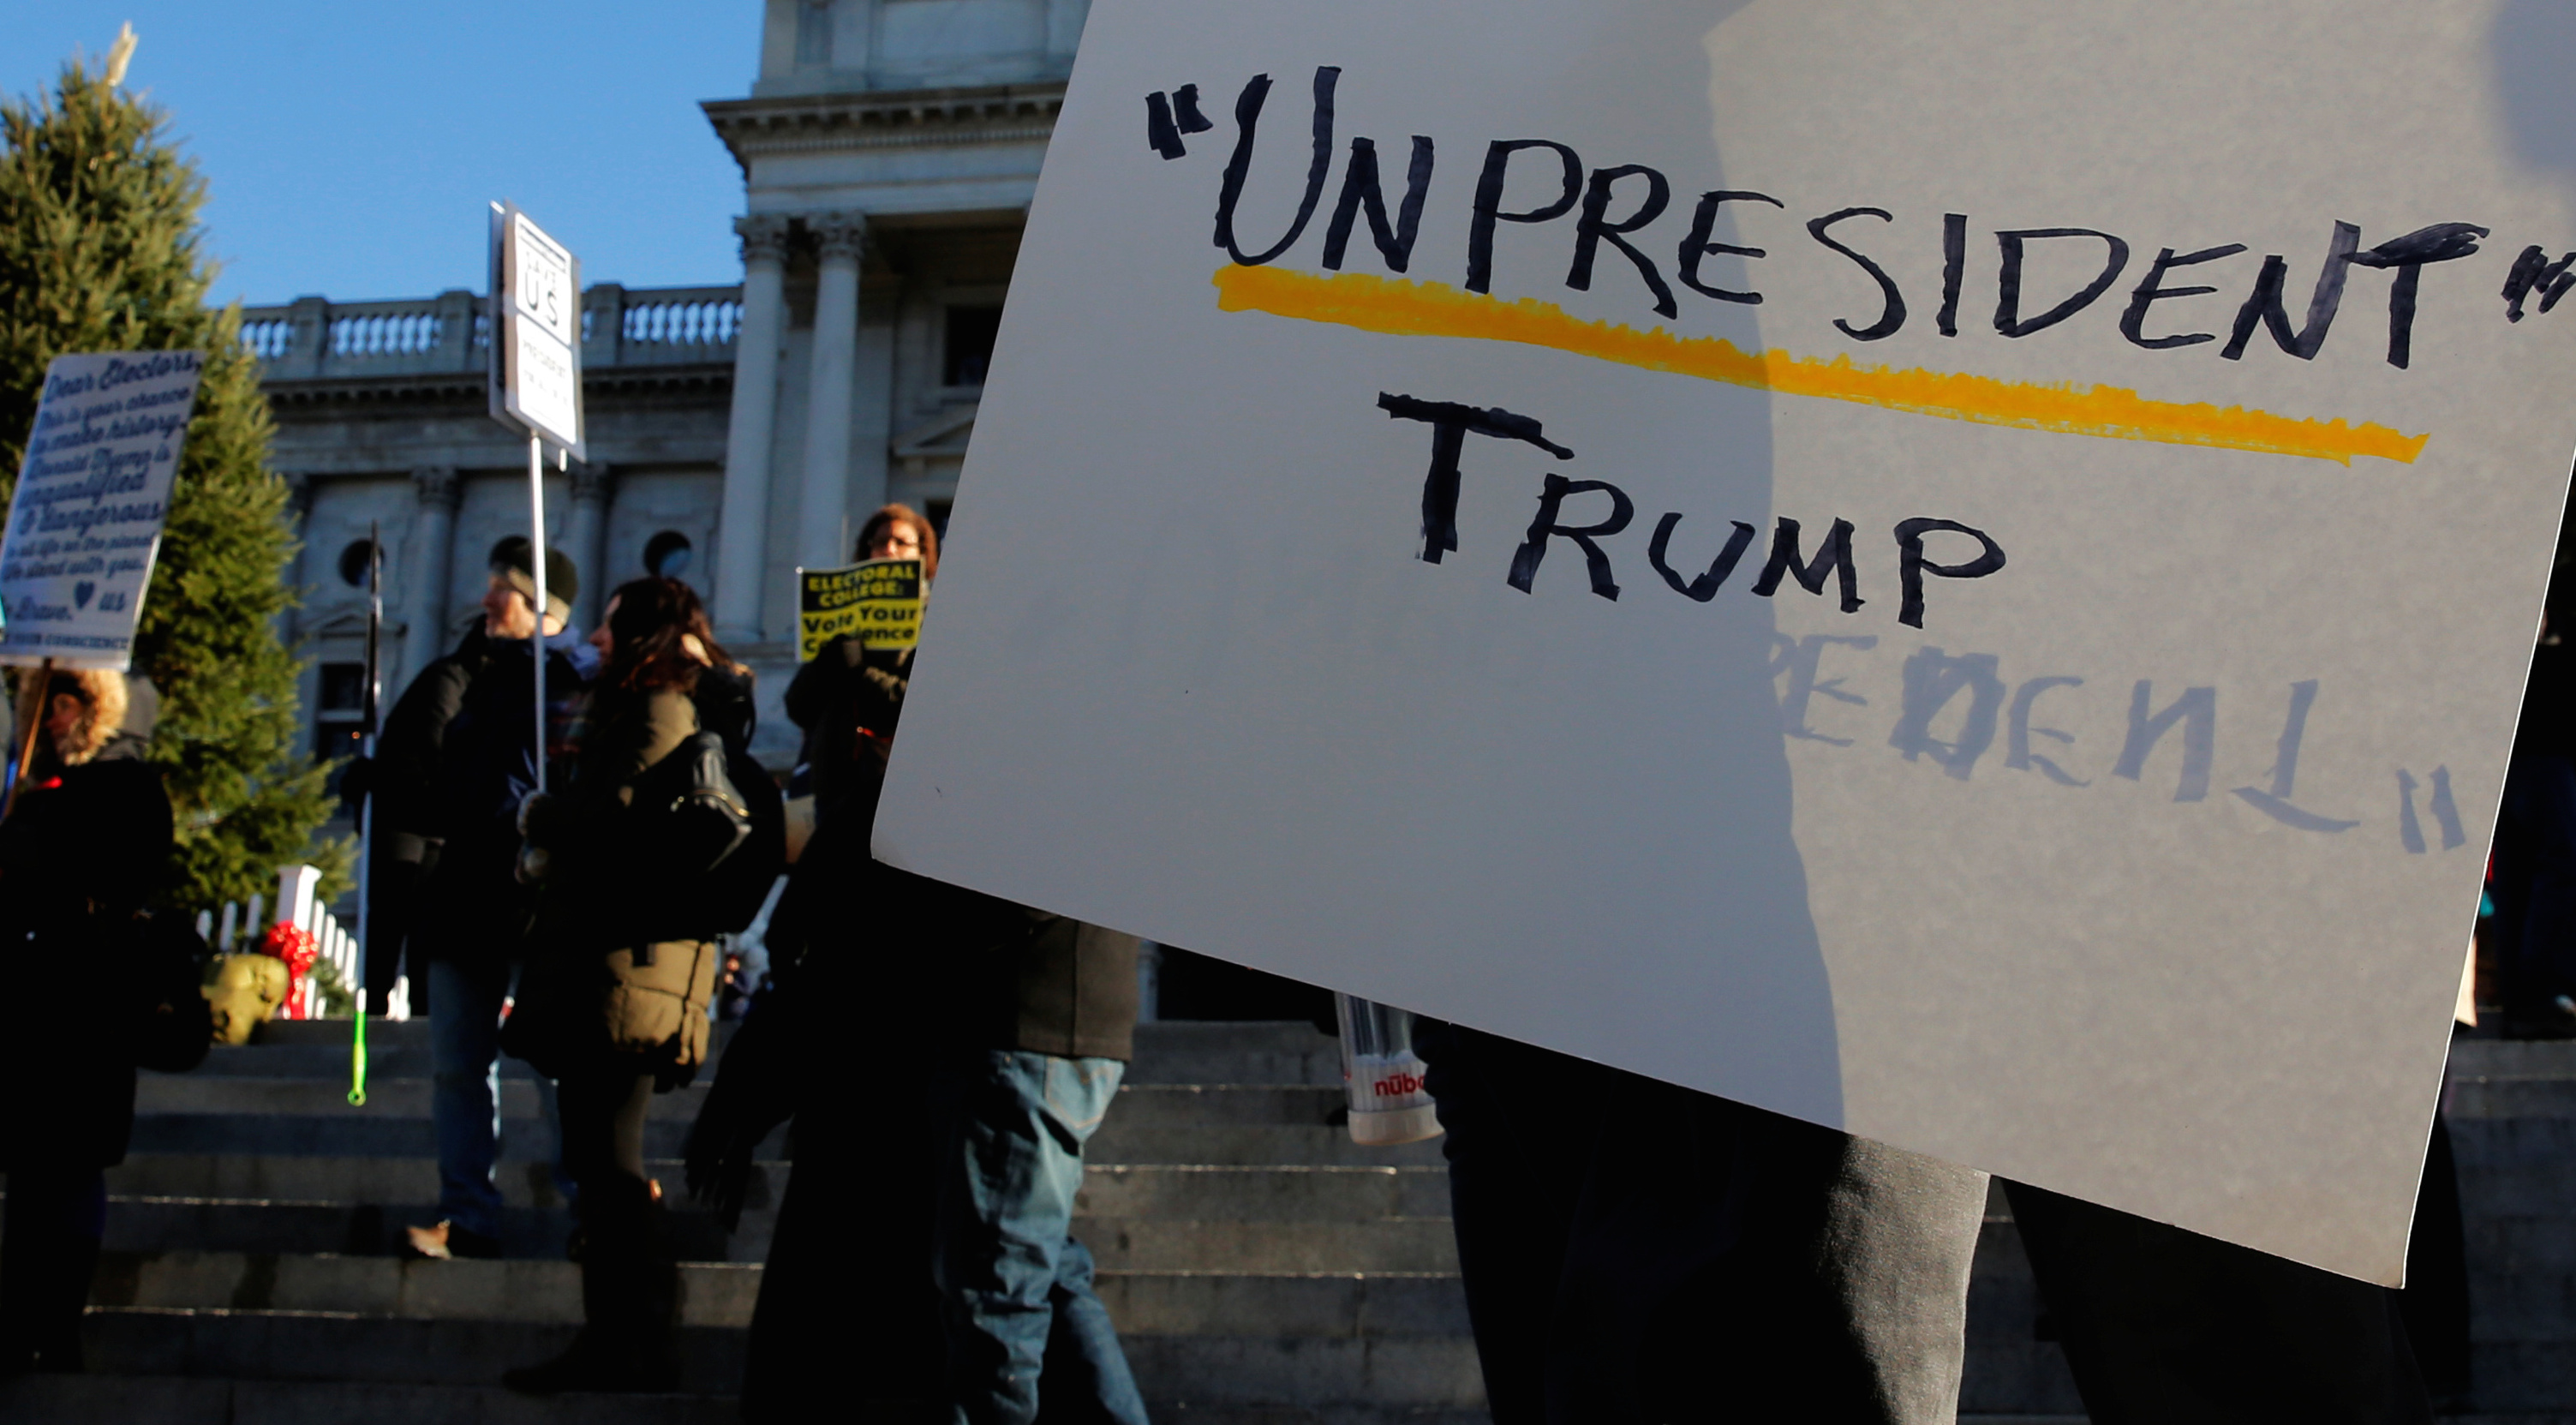 People protest against U.S. President-elect Donald Trump as electors gather to cast their votes for U.S. president at the Pennsylvania State Capitol in Harrisburg, Pennsylvania, U.S. December 19, 2016. Pennsylvania's twenty electors are assumed to be committed to Trump by virtue of his having won the popular vote in the state, but the vote that is usually routine takes place this year amid allegations of Russian hacking to try to influence the election.